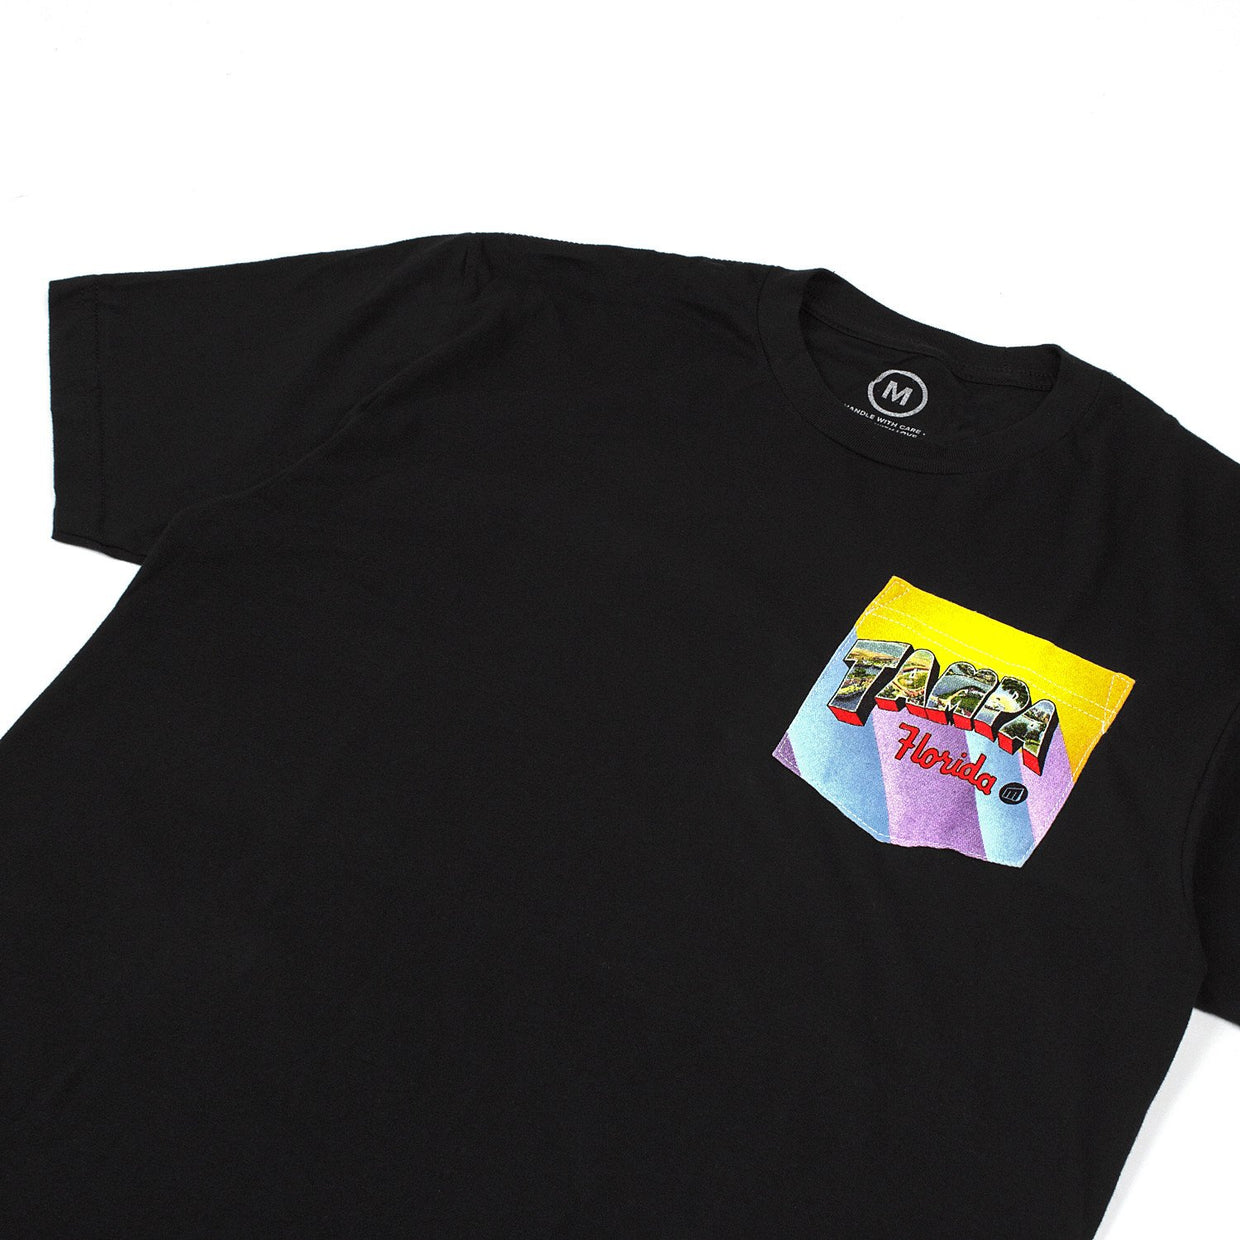 'Tampa Pocket' T-Shirt